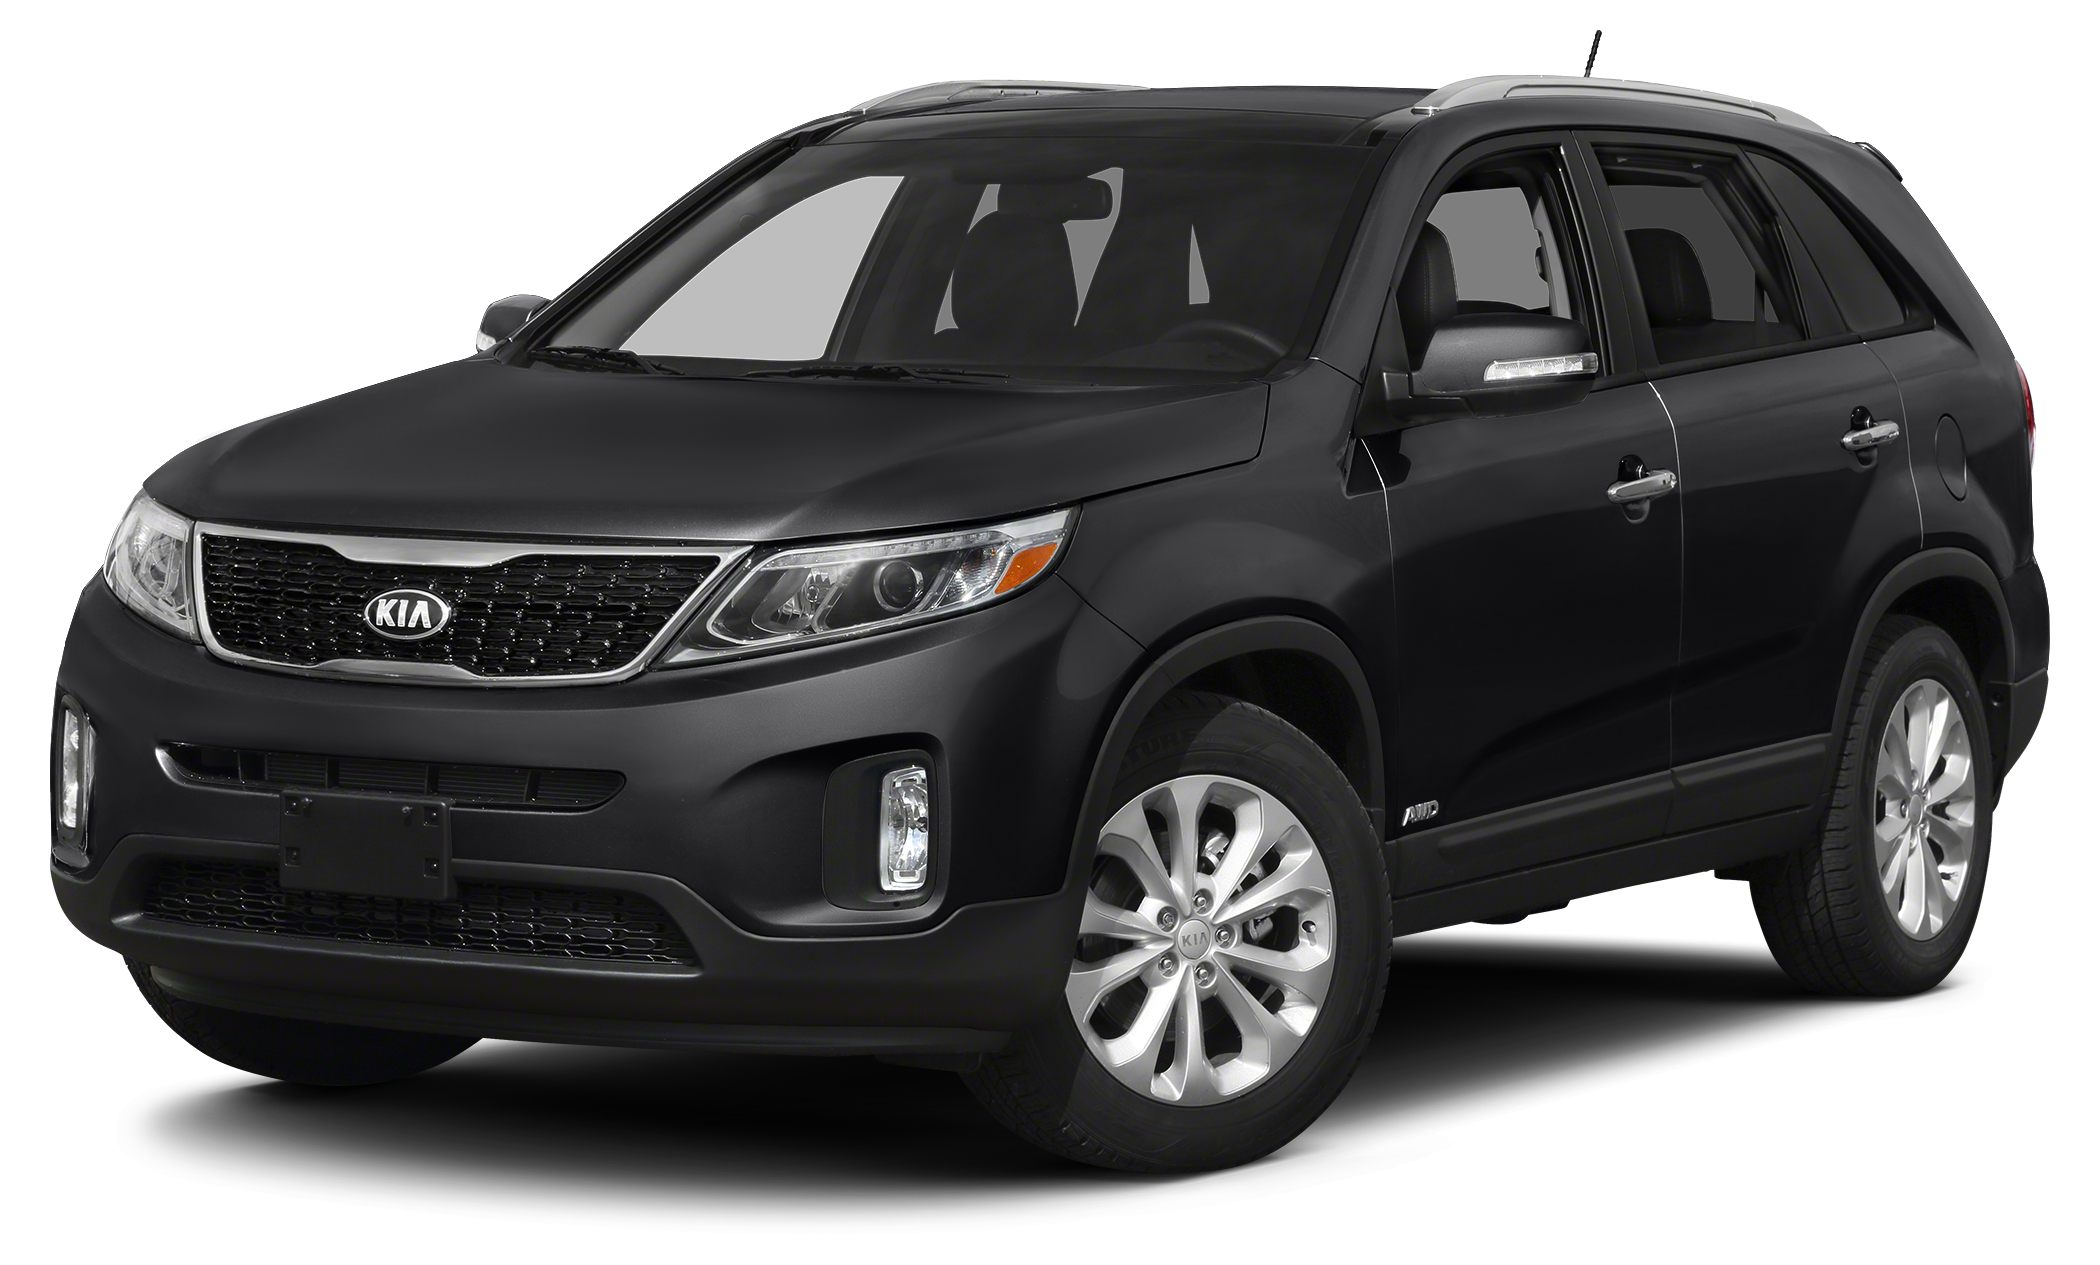 2014 Kia Sorento LX WE SELL OUR VEHICLES AT WHOLESALE PRICES AND STAND BEHIND OUR CARS  COME